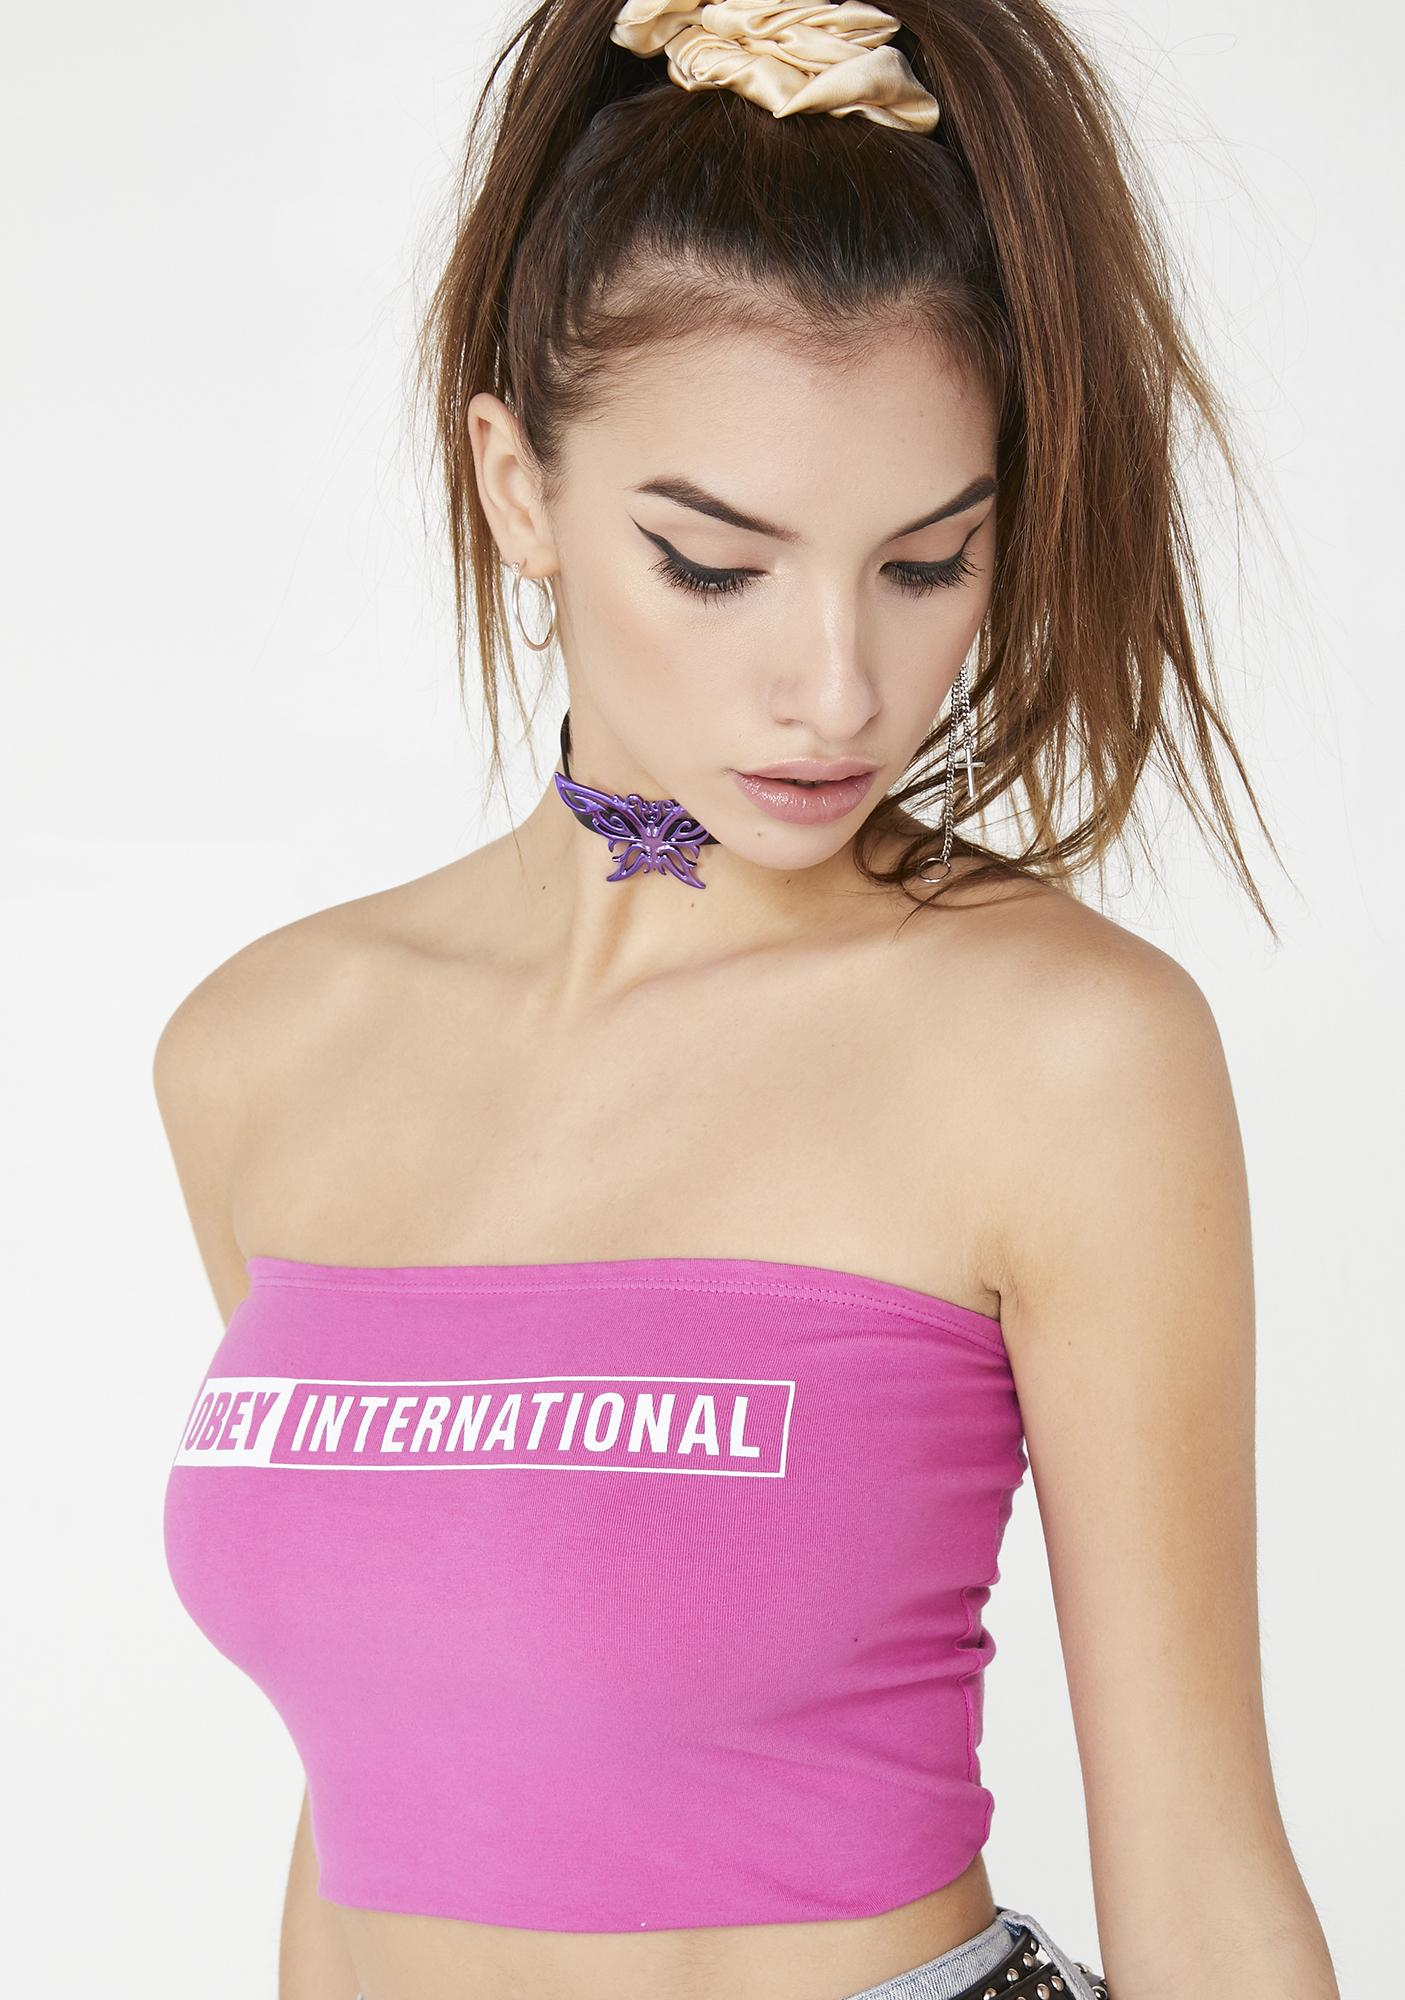 Obey OBEY International 2 Tube Top